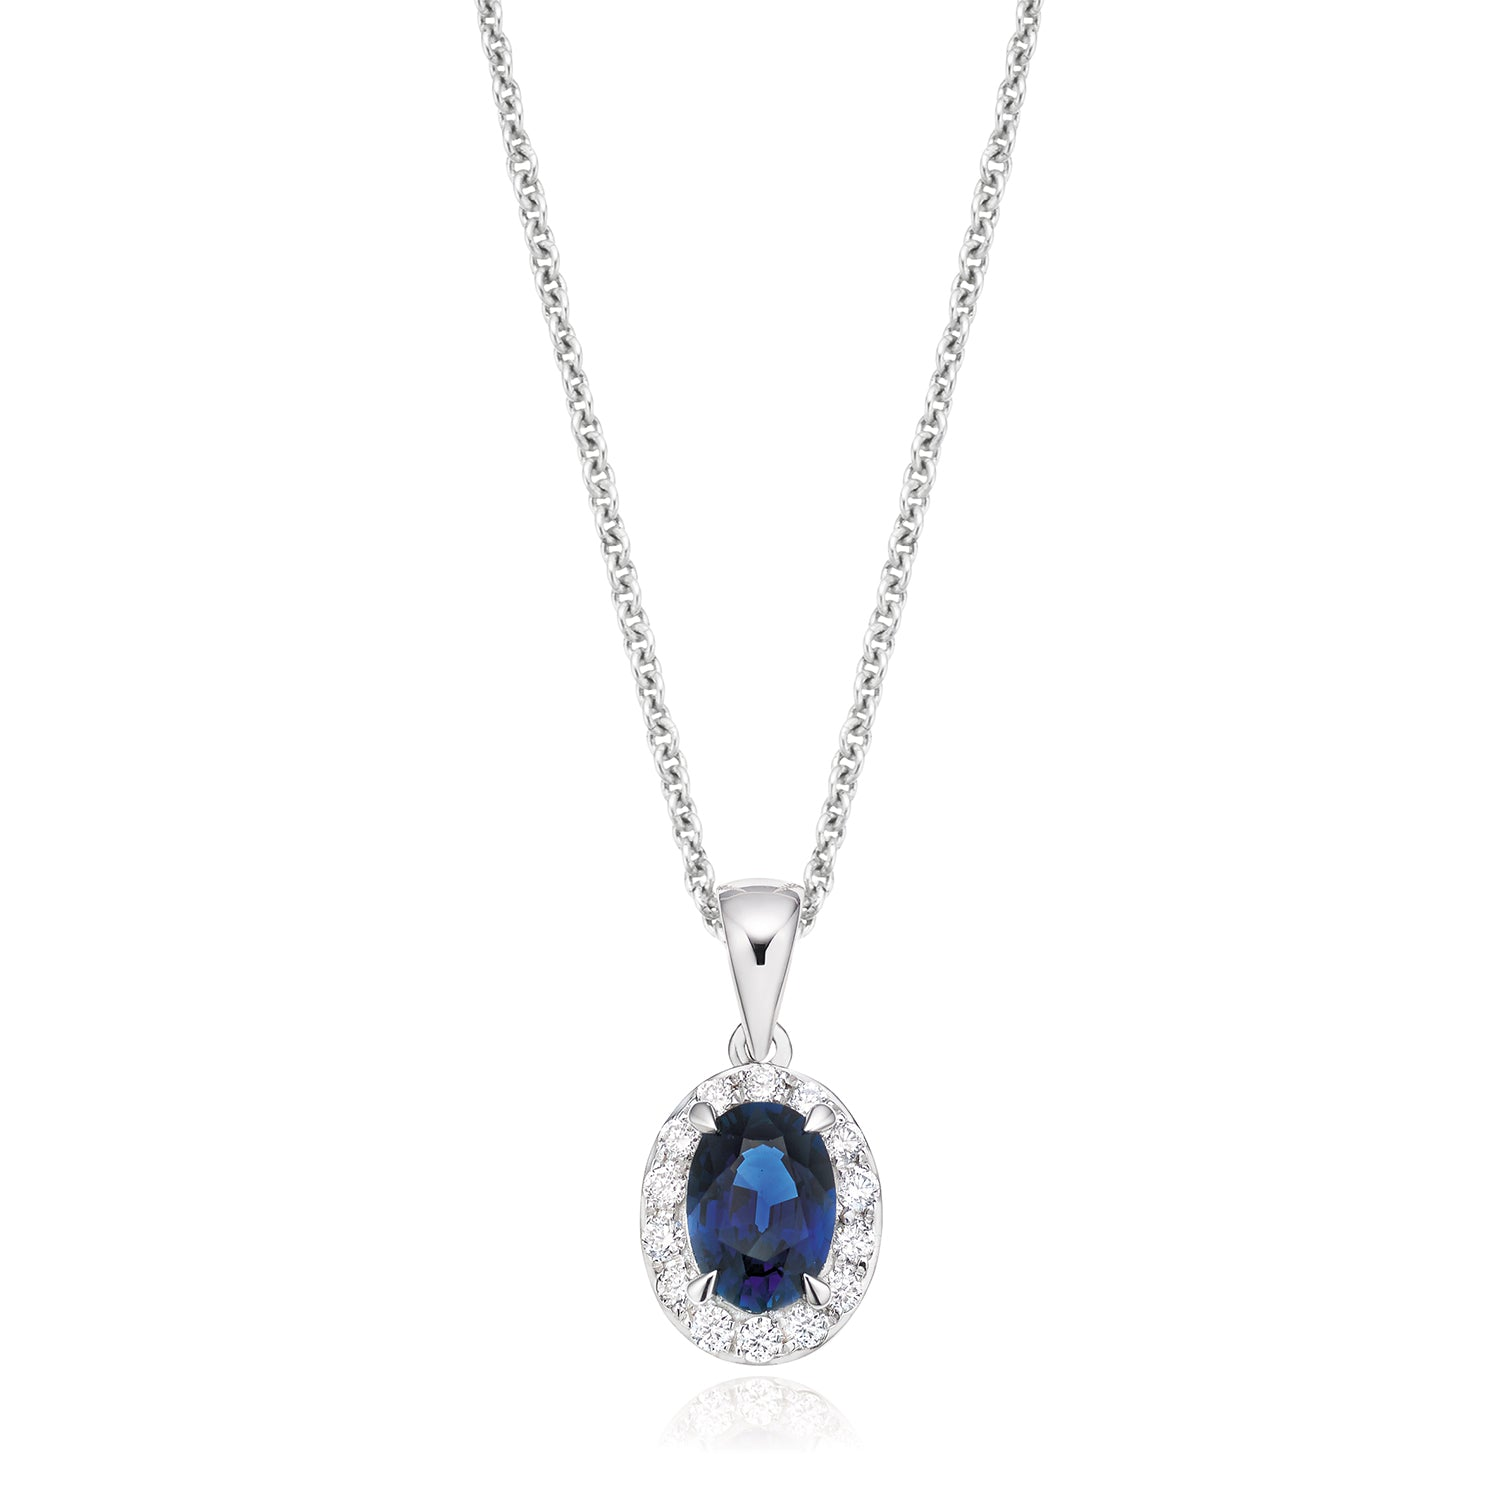 18ct White Gold Oval Cut Sapphire with 0.20 CARAT tw of Diamond Pendant